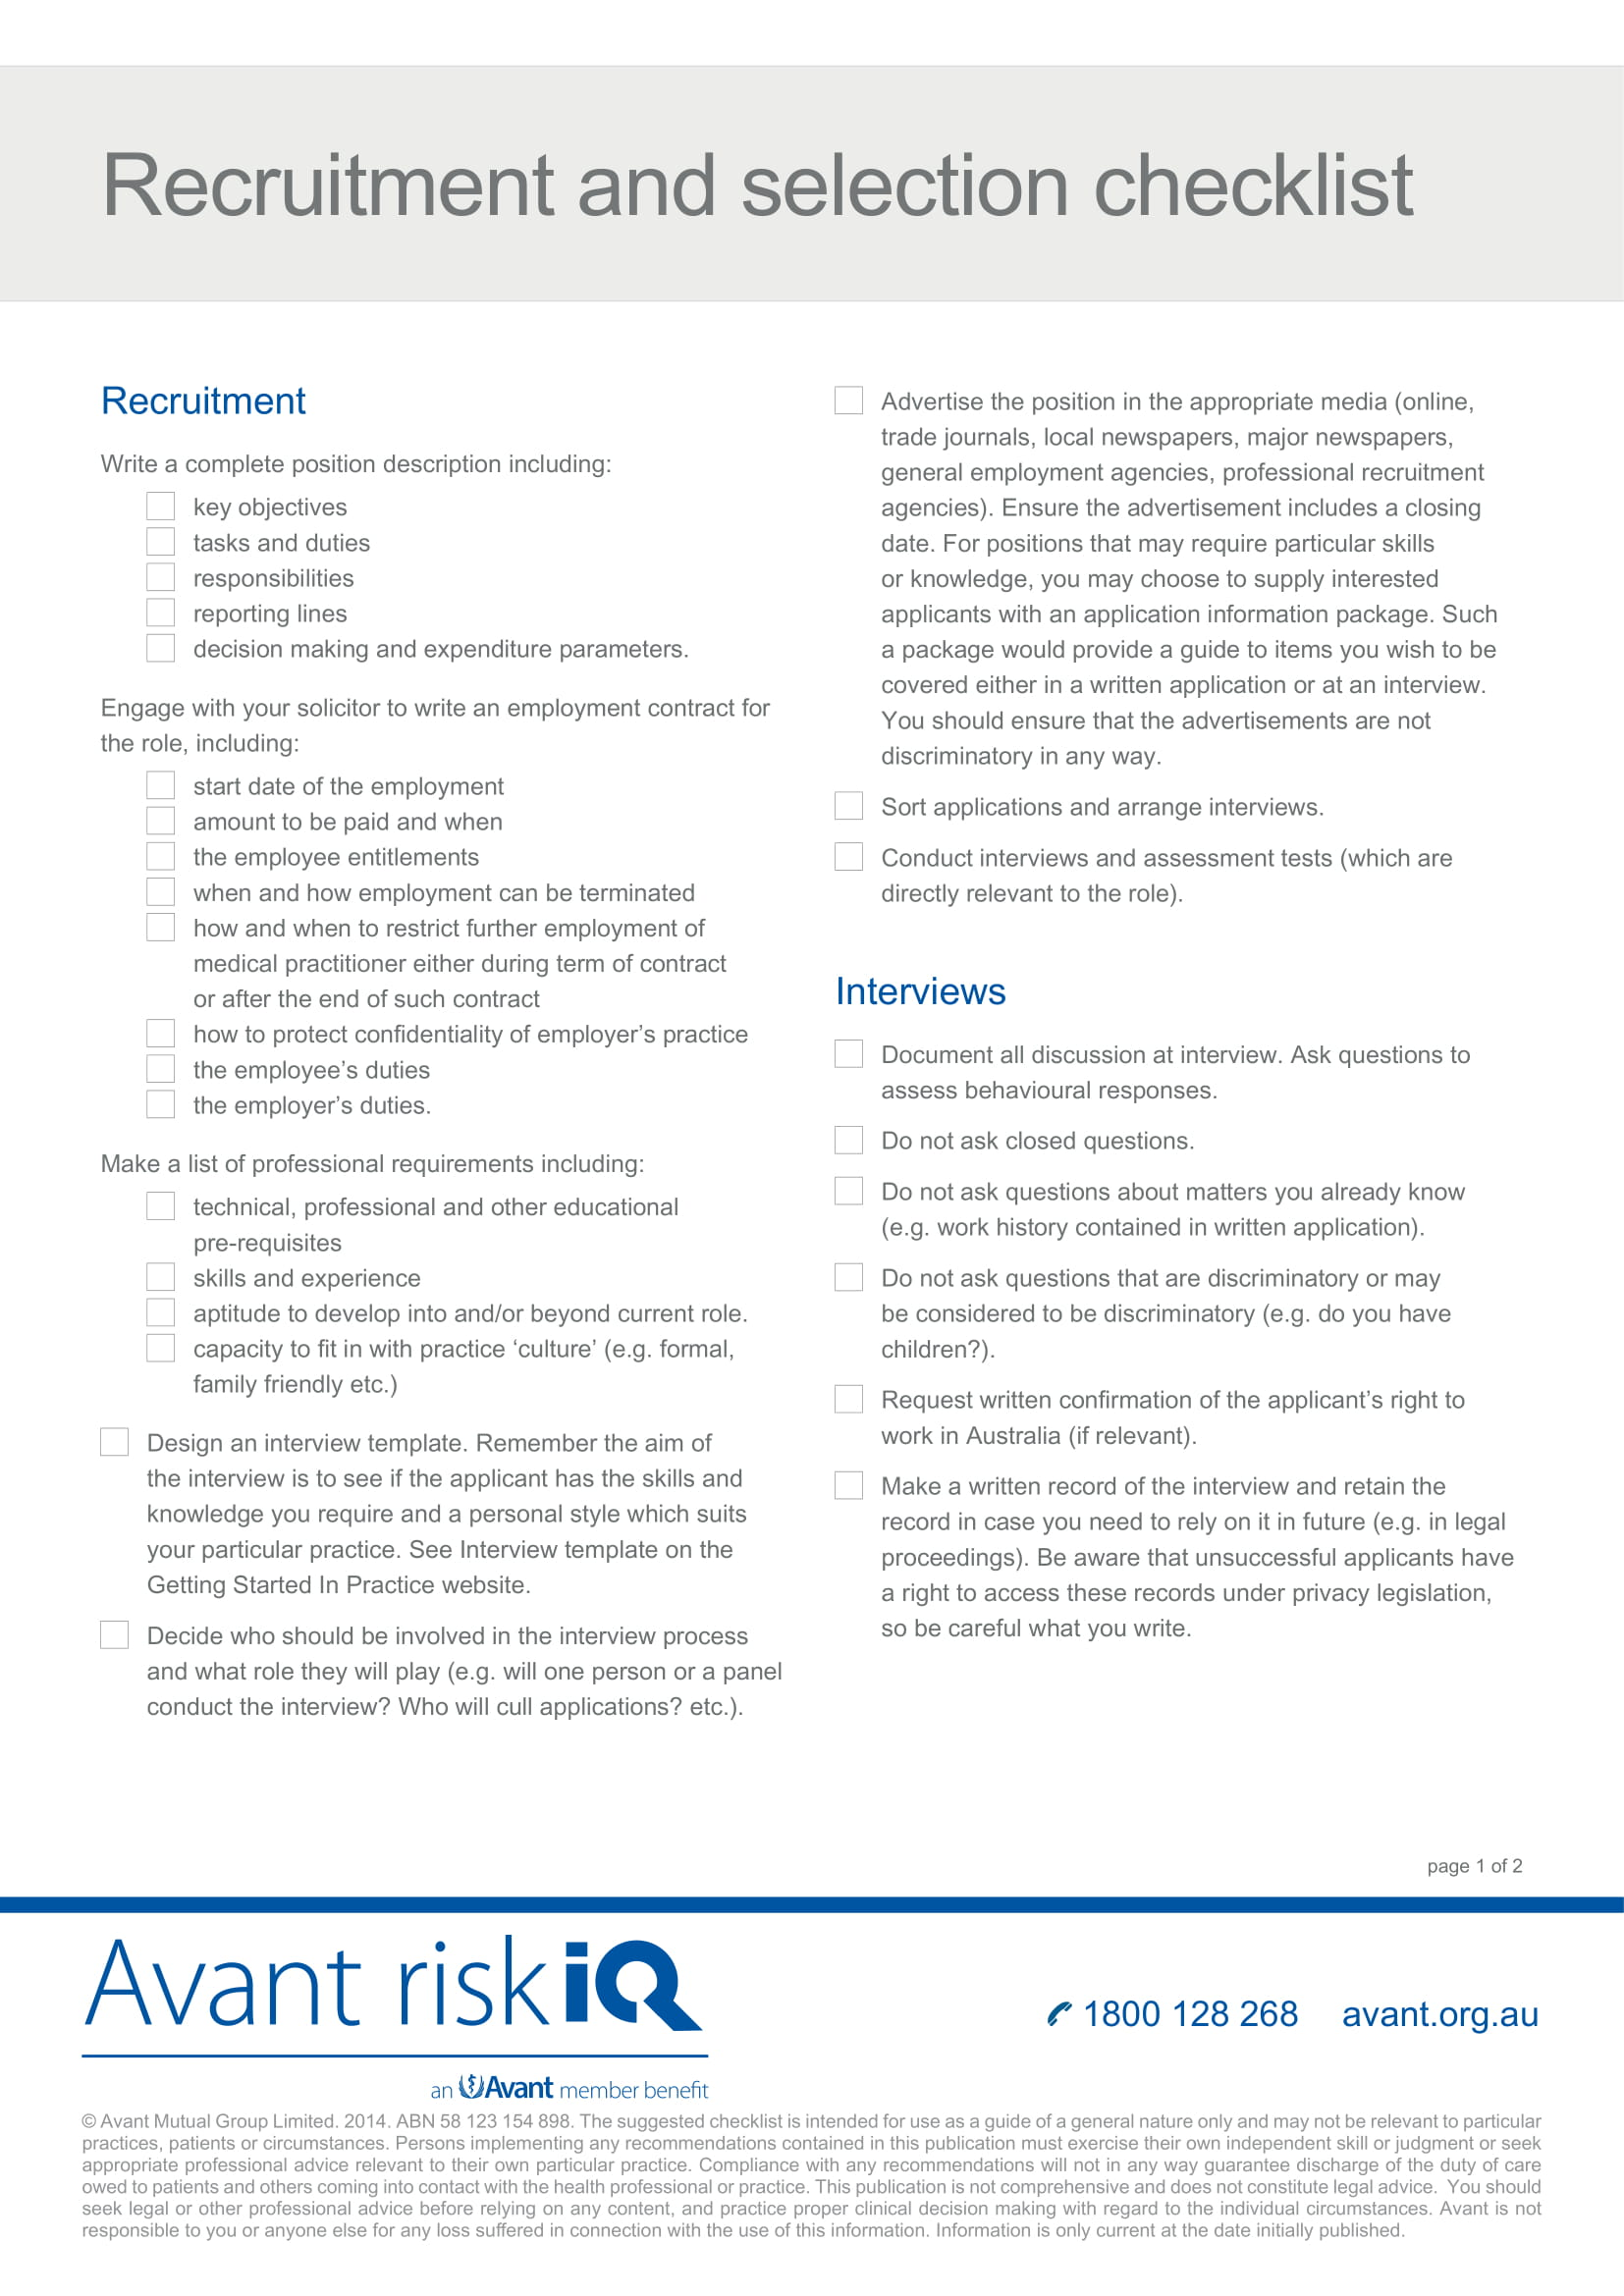 recruitment and selection checklist example